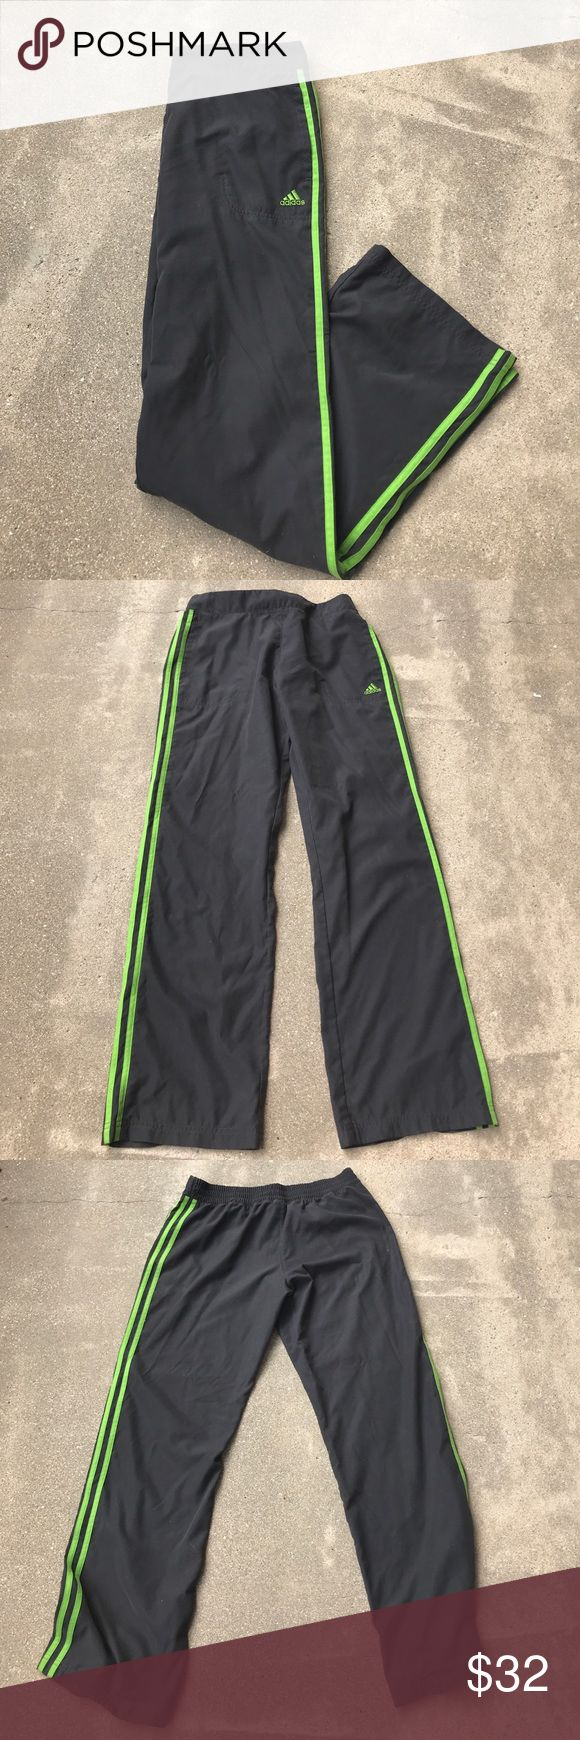 Adidas Gray and Green sweatpants 💚 Adidas Gray and Green sweatpants 💚 Size: M Great used condition! features elastic waistband and pockets! Perfect for working out or just hanging out! Matching jacket is listed in my closet! bundle to receive 15% off!! adidas Pants Track Pants & Joggers